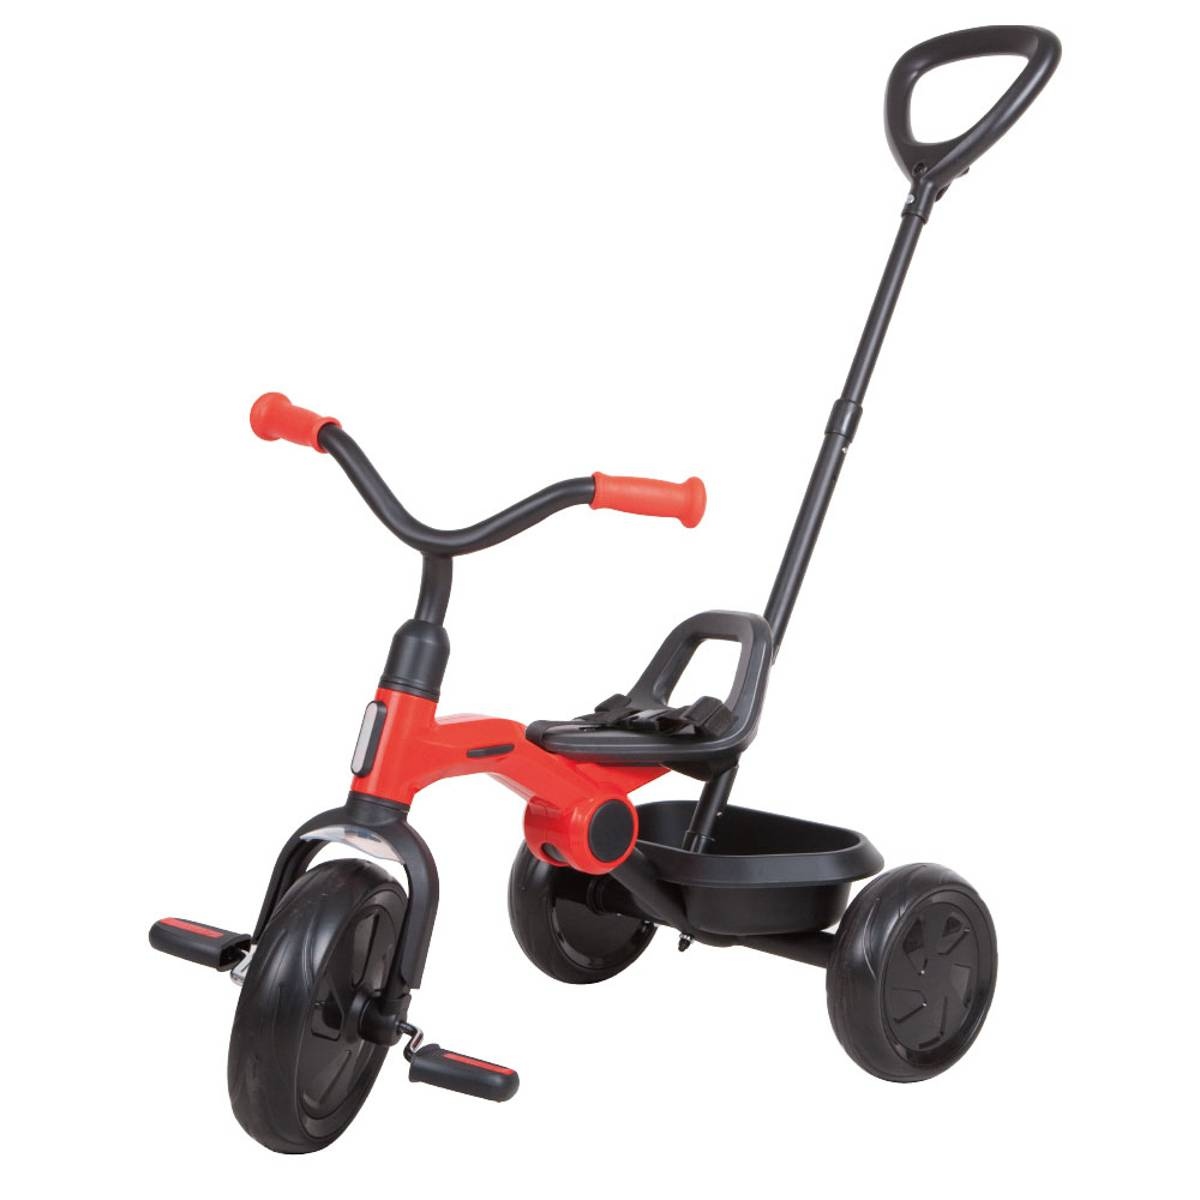 TRICICLO ANT ROJO T440 3